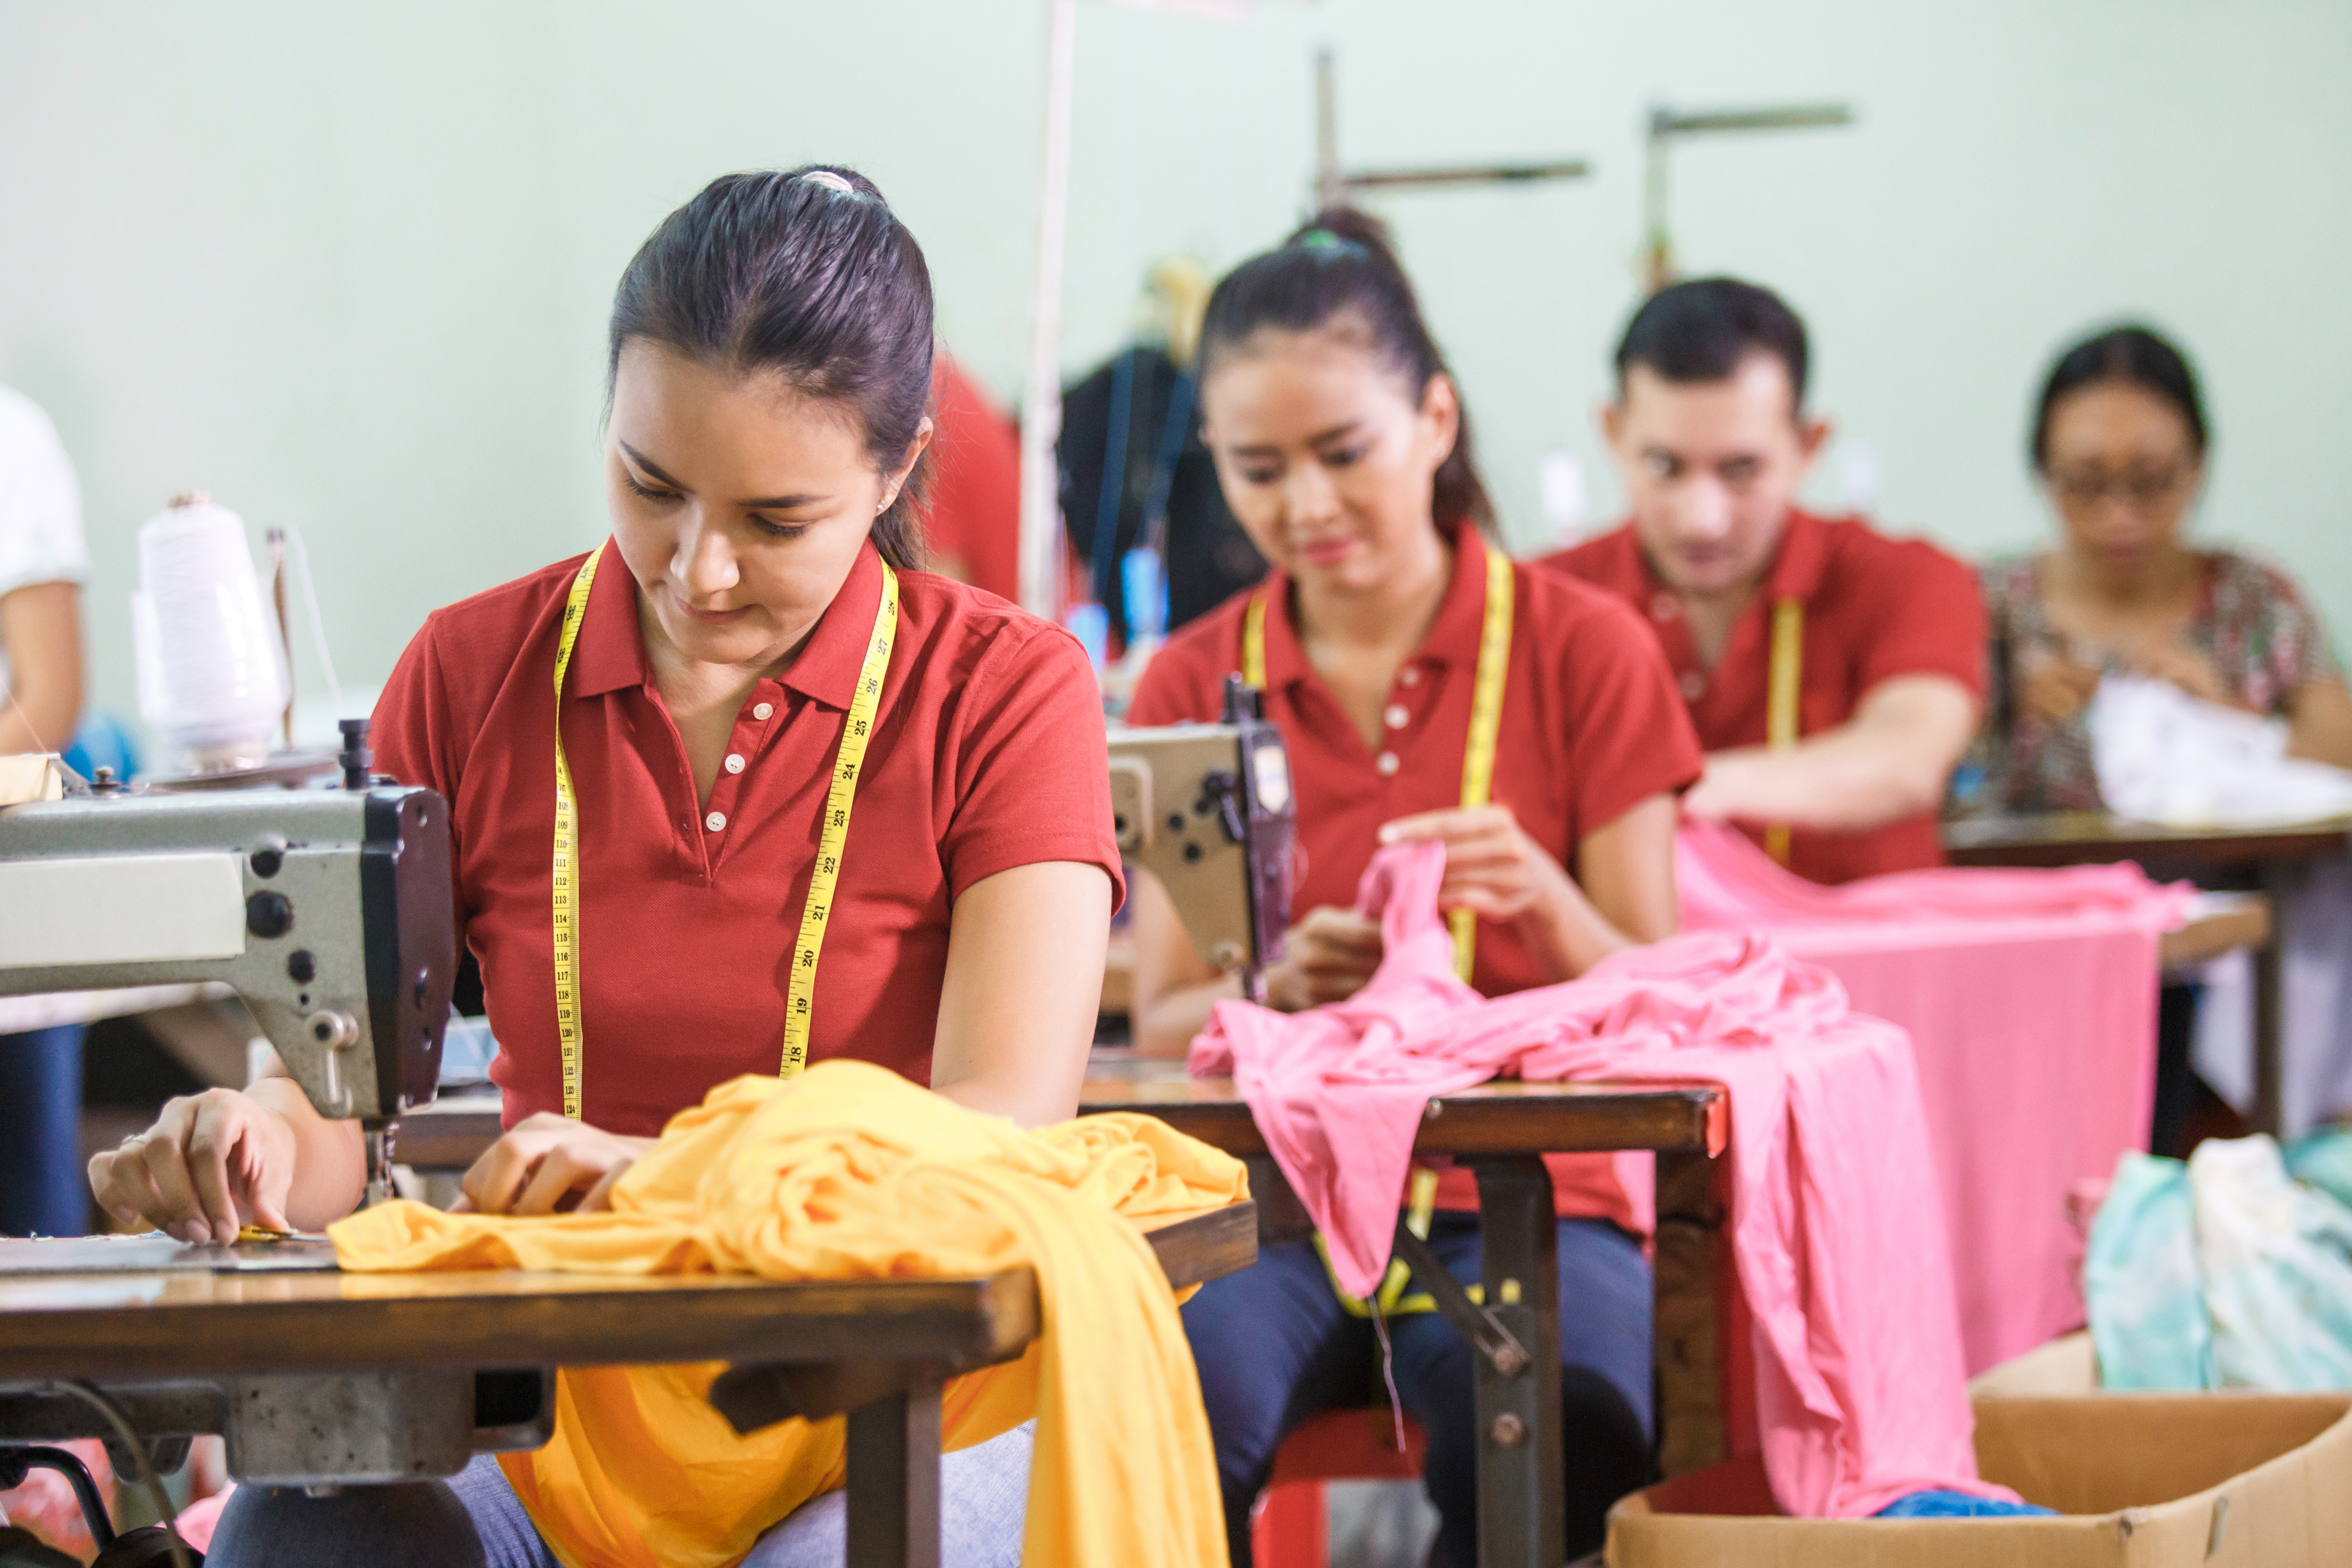 Workers in garment factory sewing with industrial sewing machine